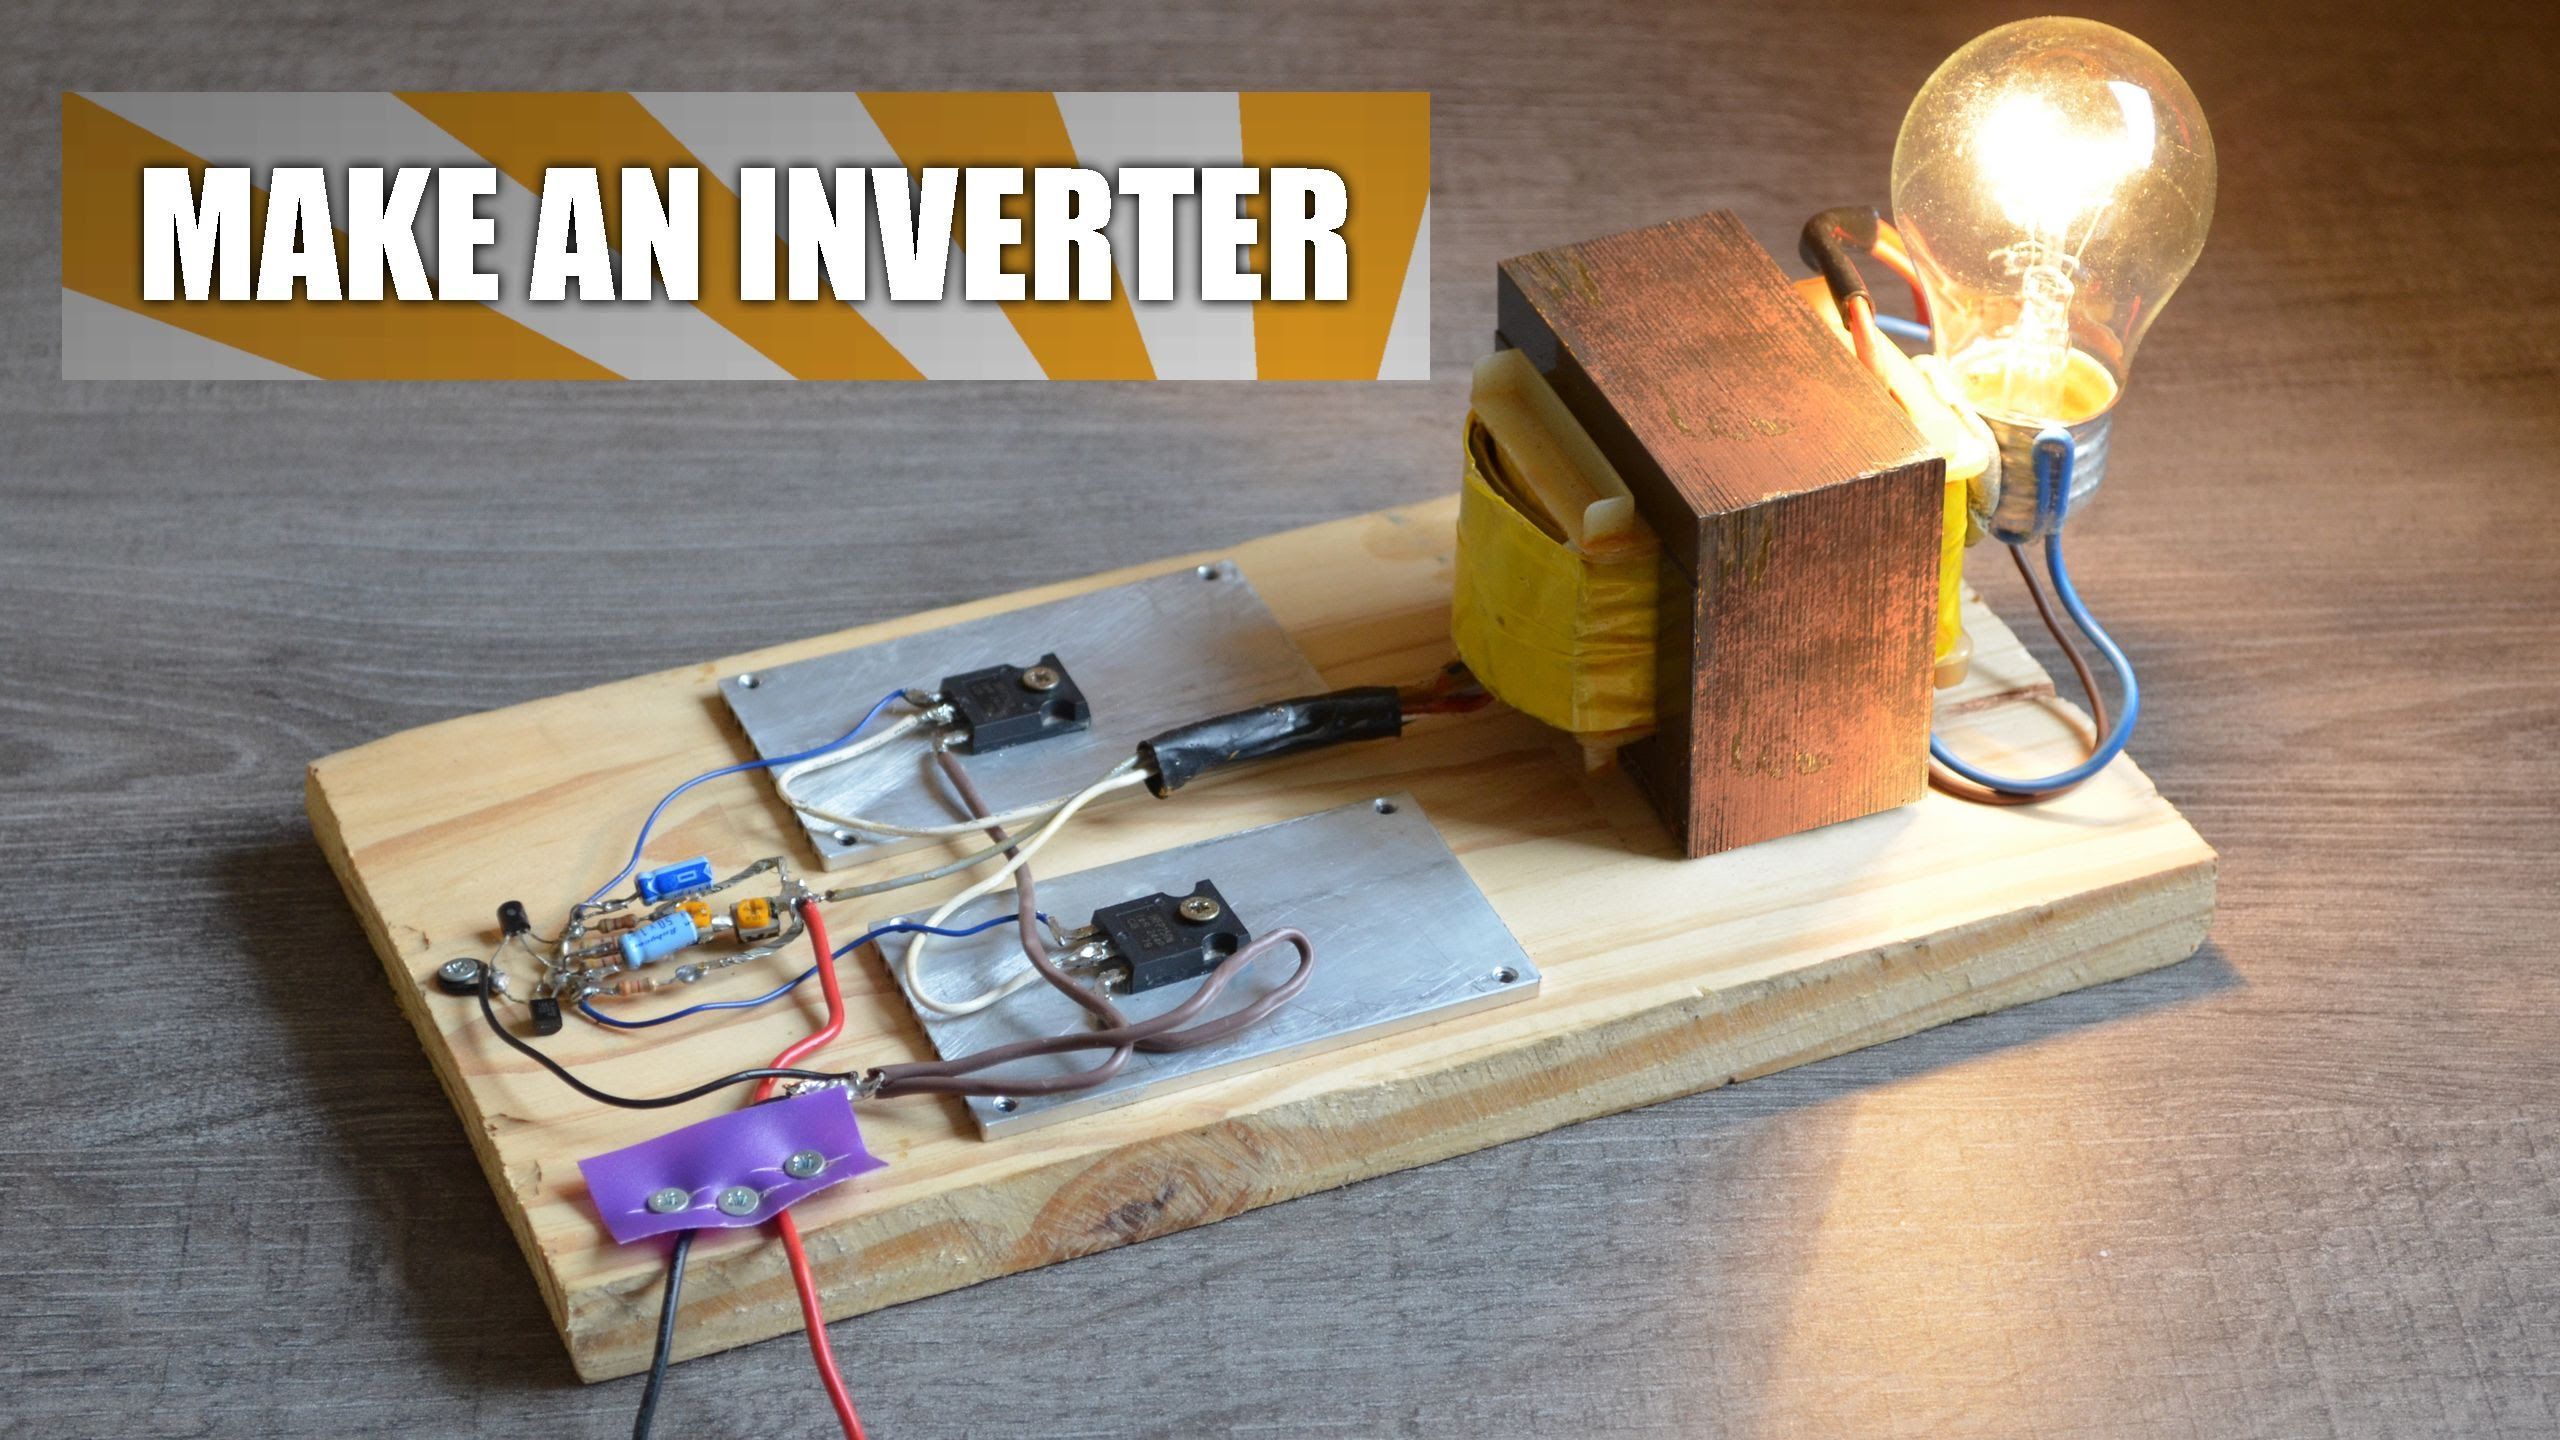 Make An Inverter Diy Experiments 2 Power Ac Devices With A Circuit Using Tiny Ferrite Transformer Electronic Projects Battery